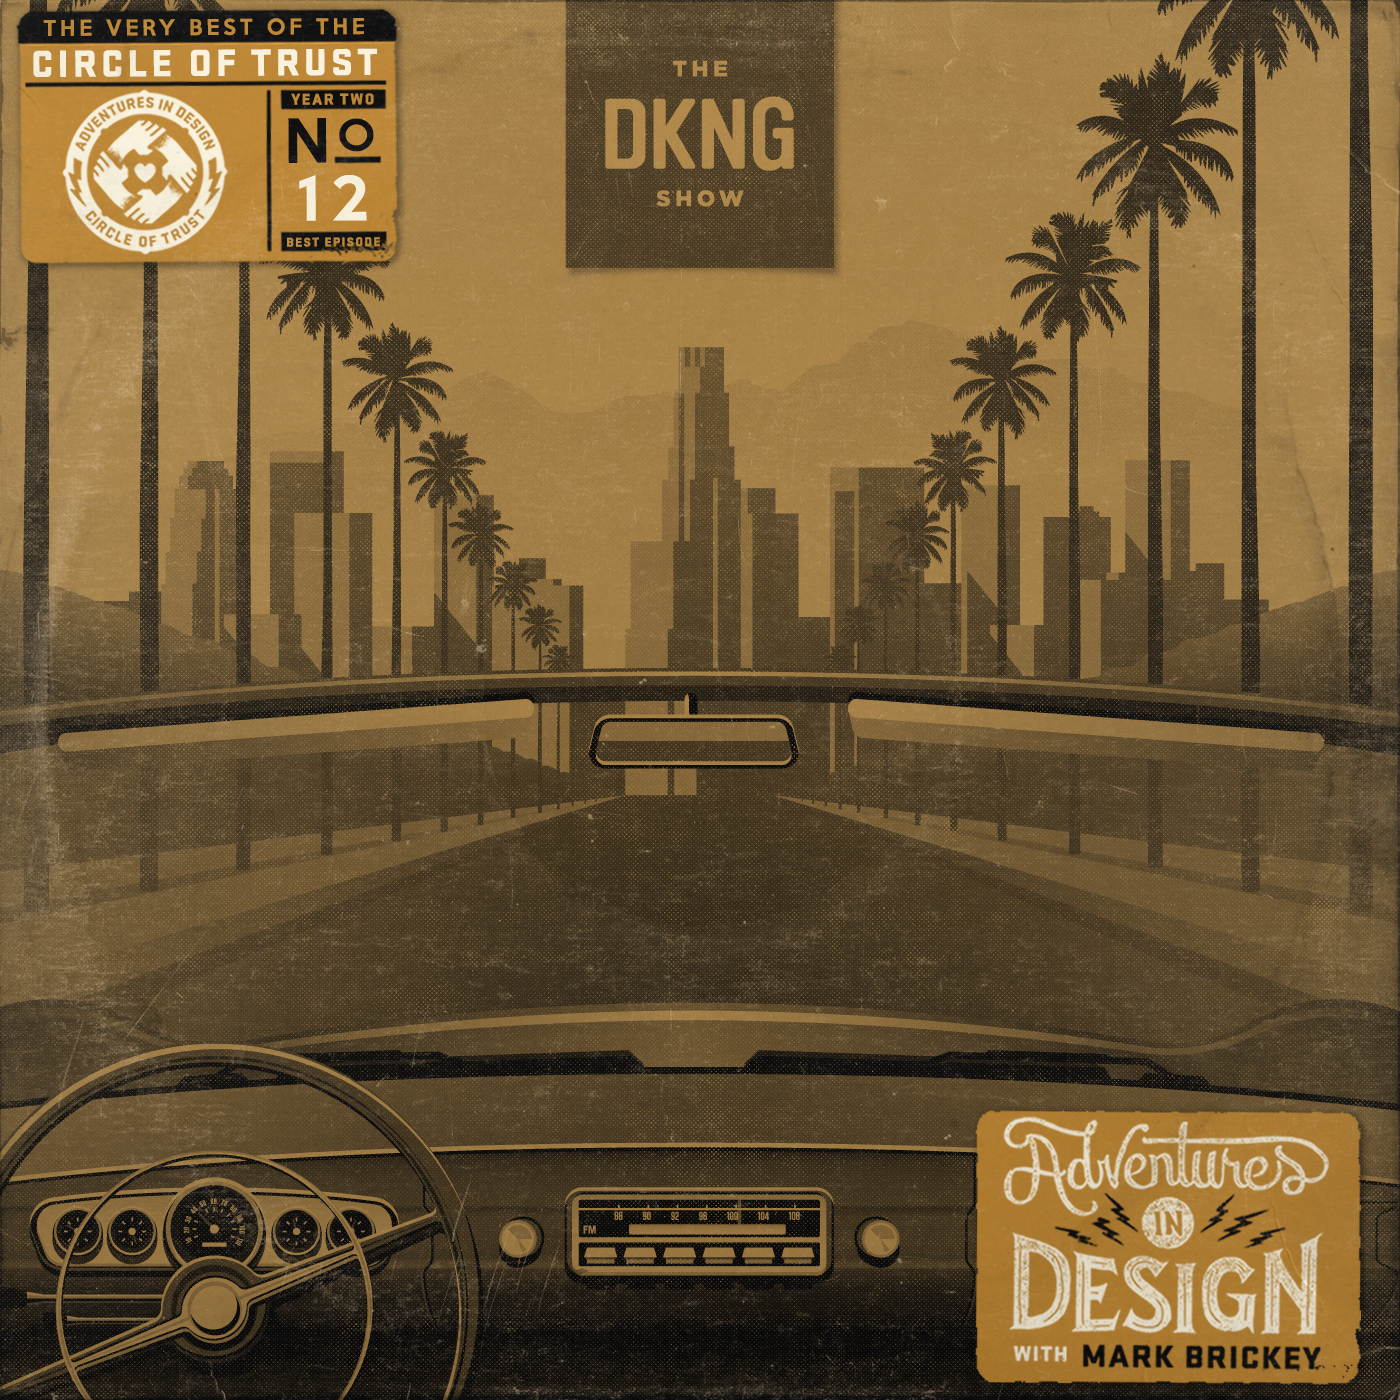 The Best Of The Circle Of Trust Year Two: AID 326 - The DKNG Show Part 01